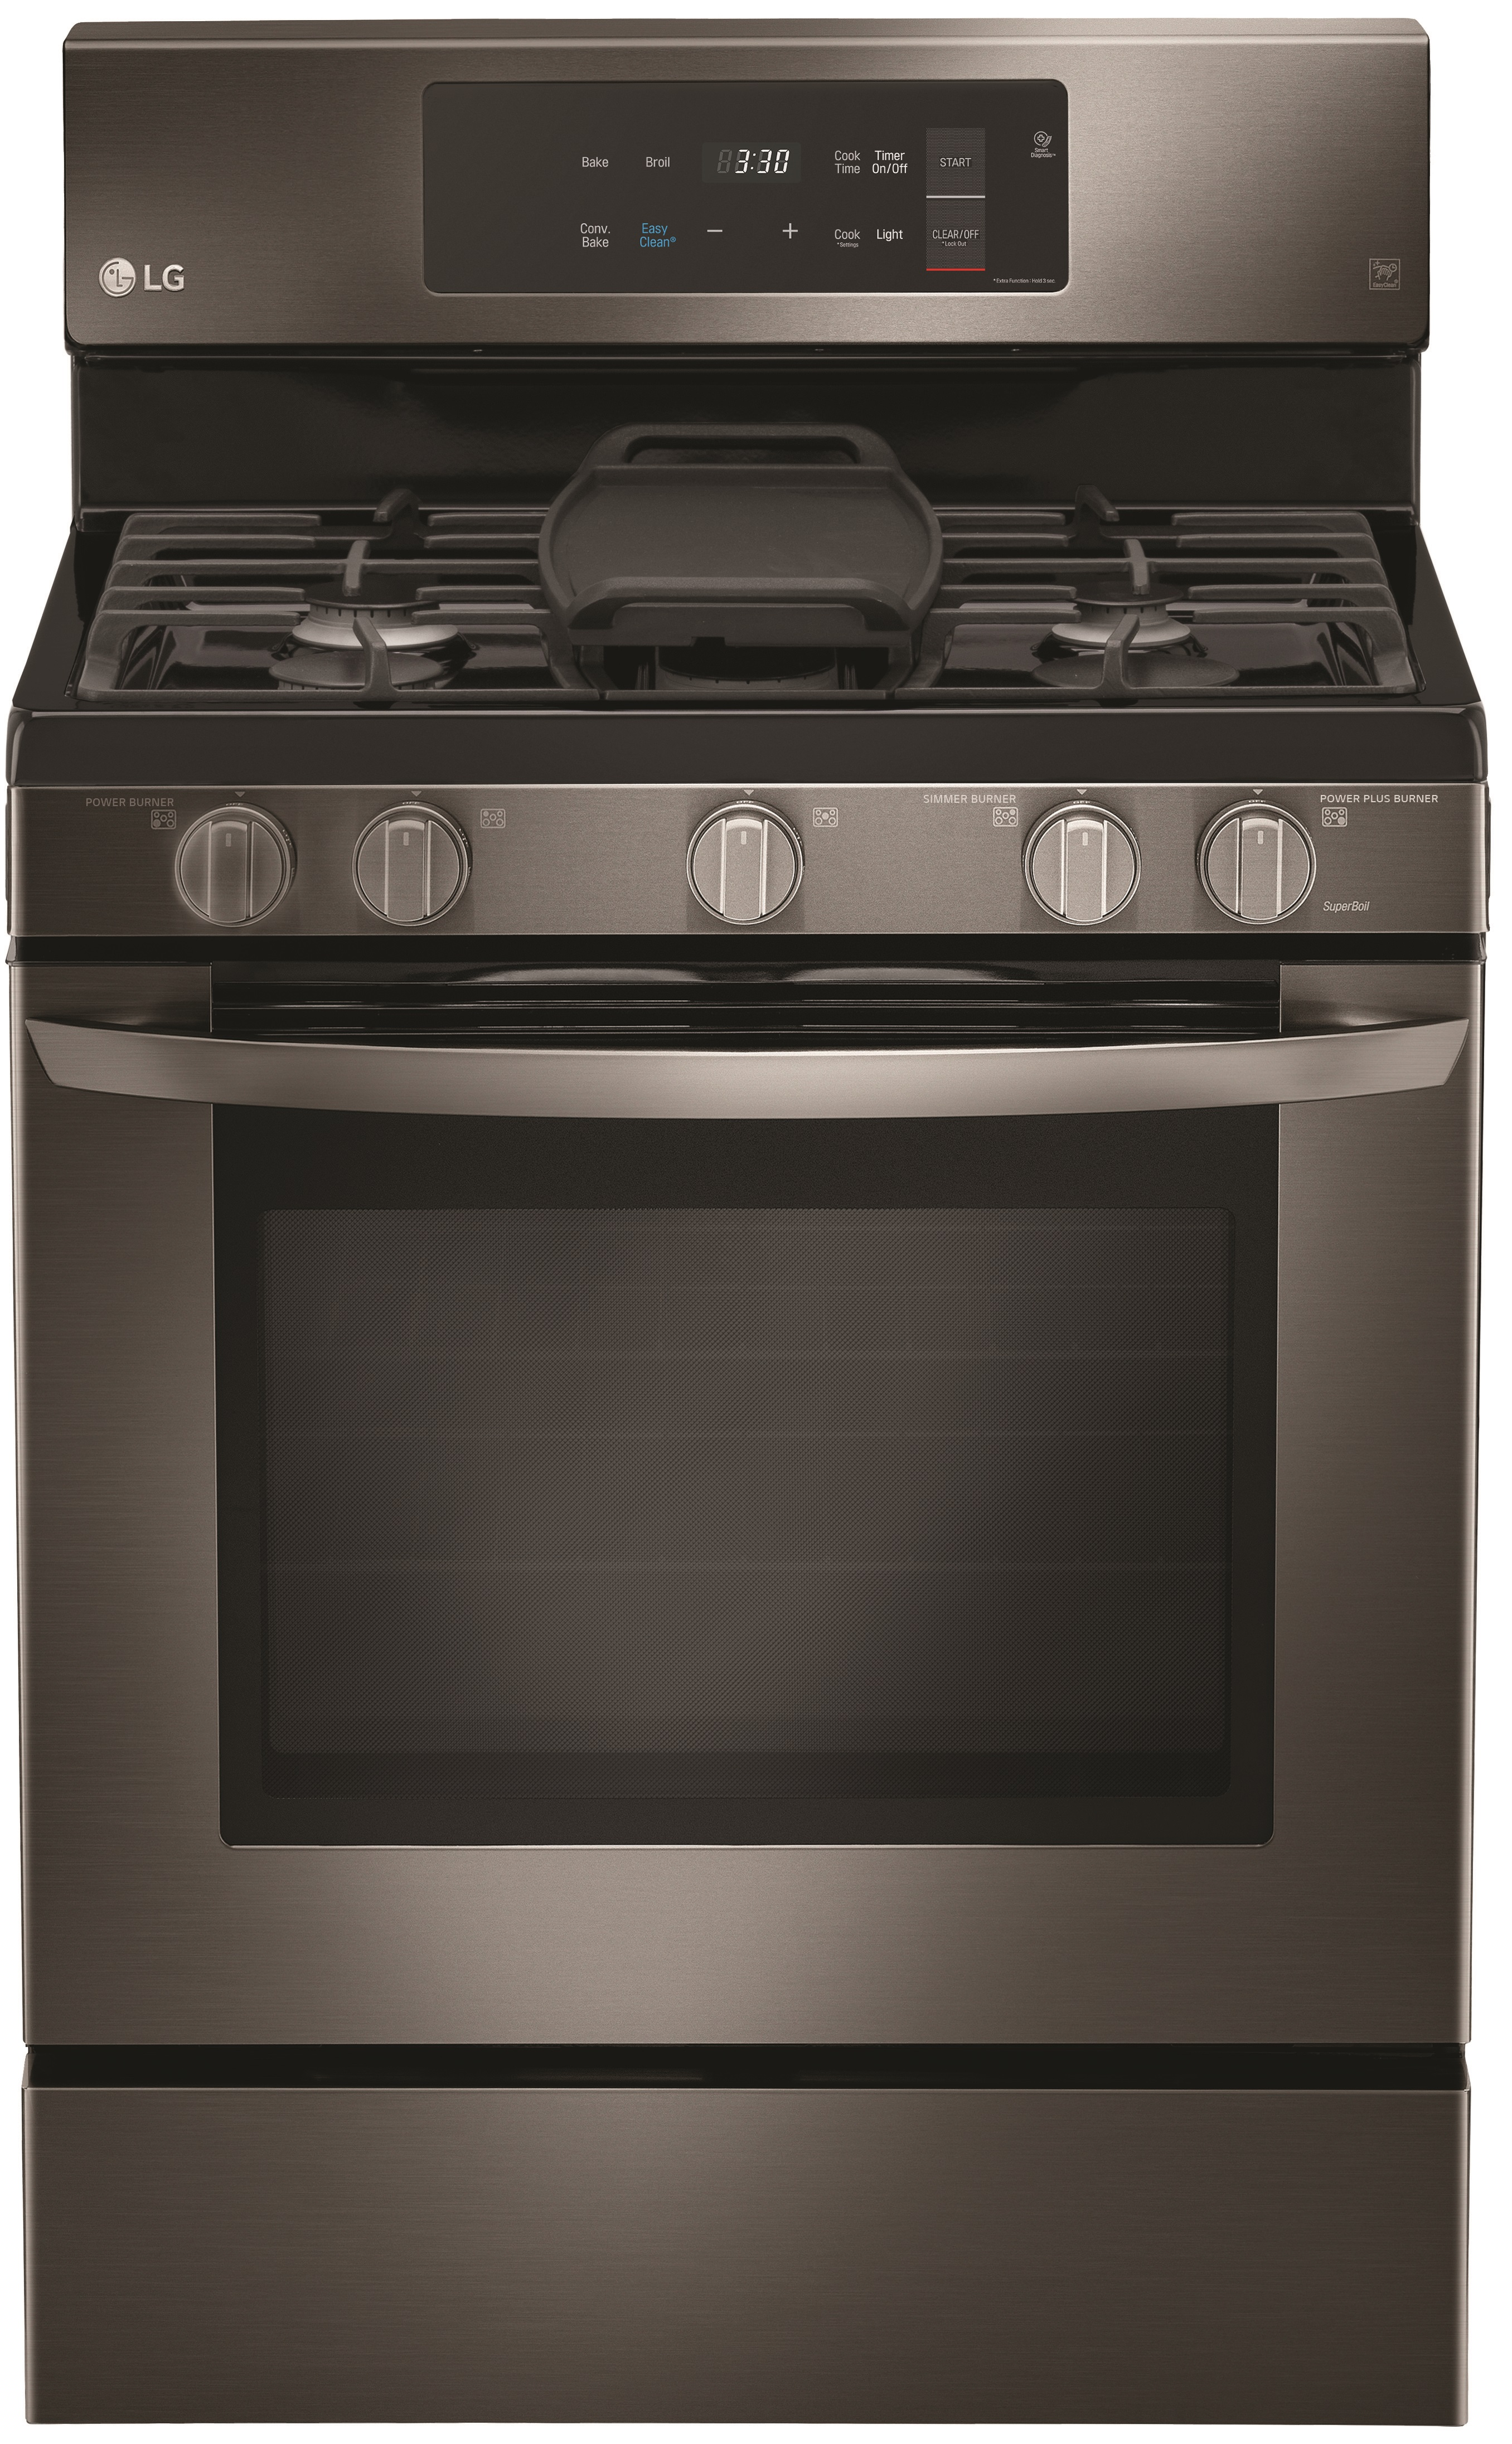 LG Over the Range Microwave Oven-Black Stainless Steel